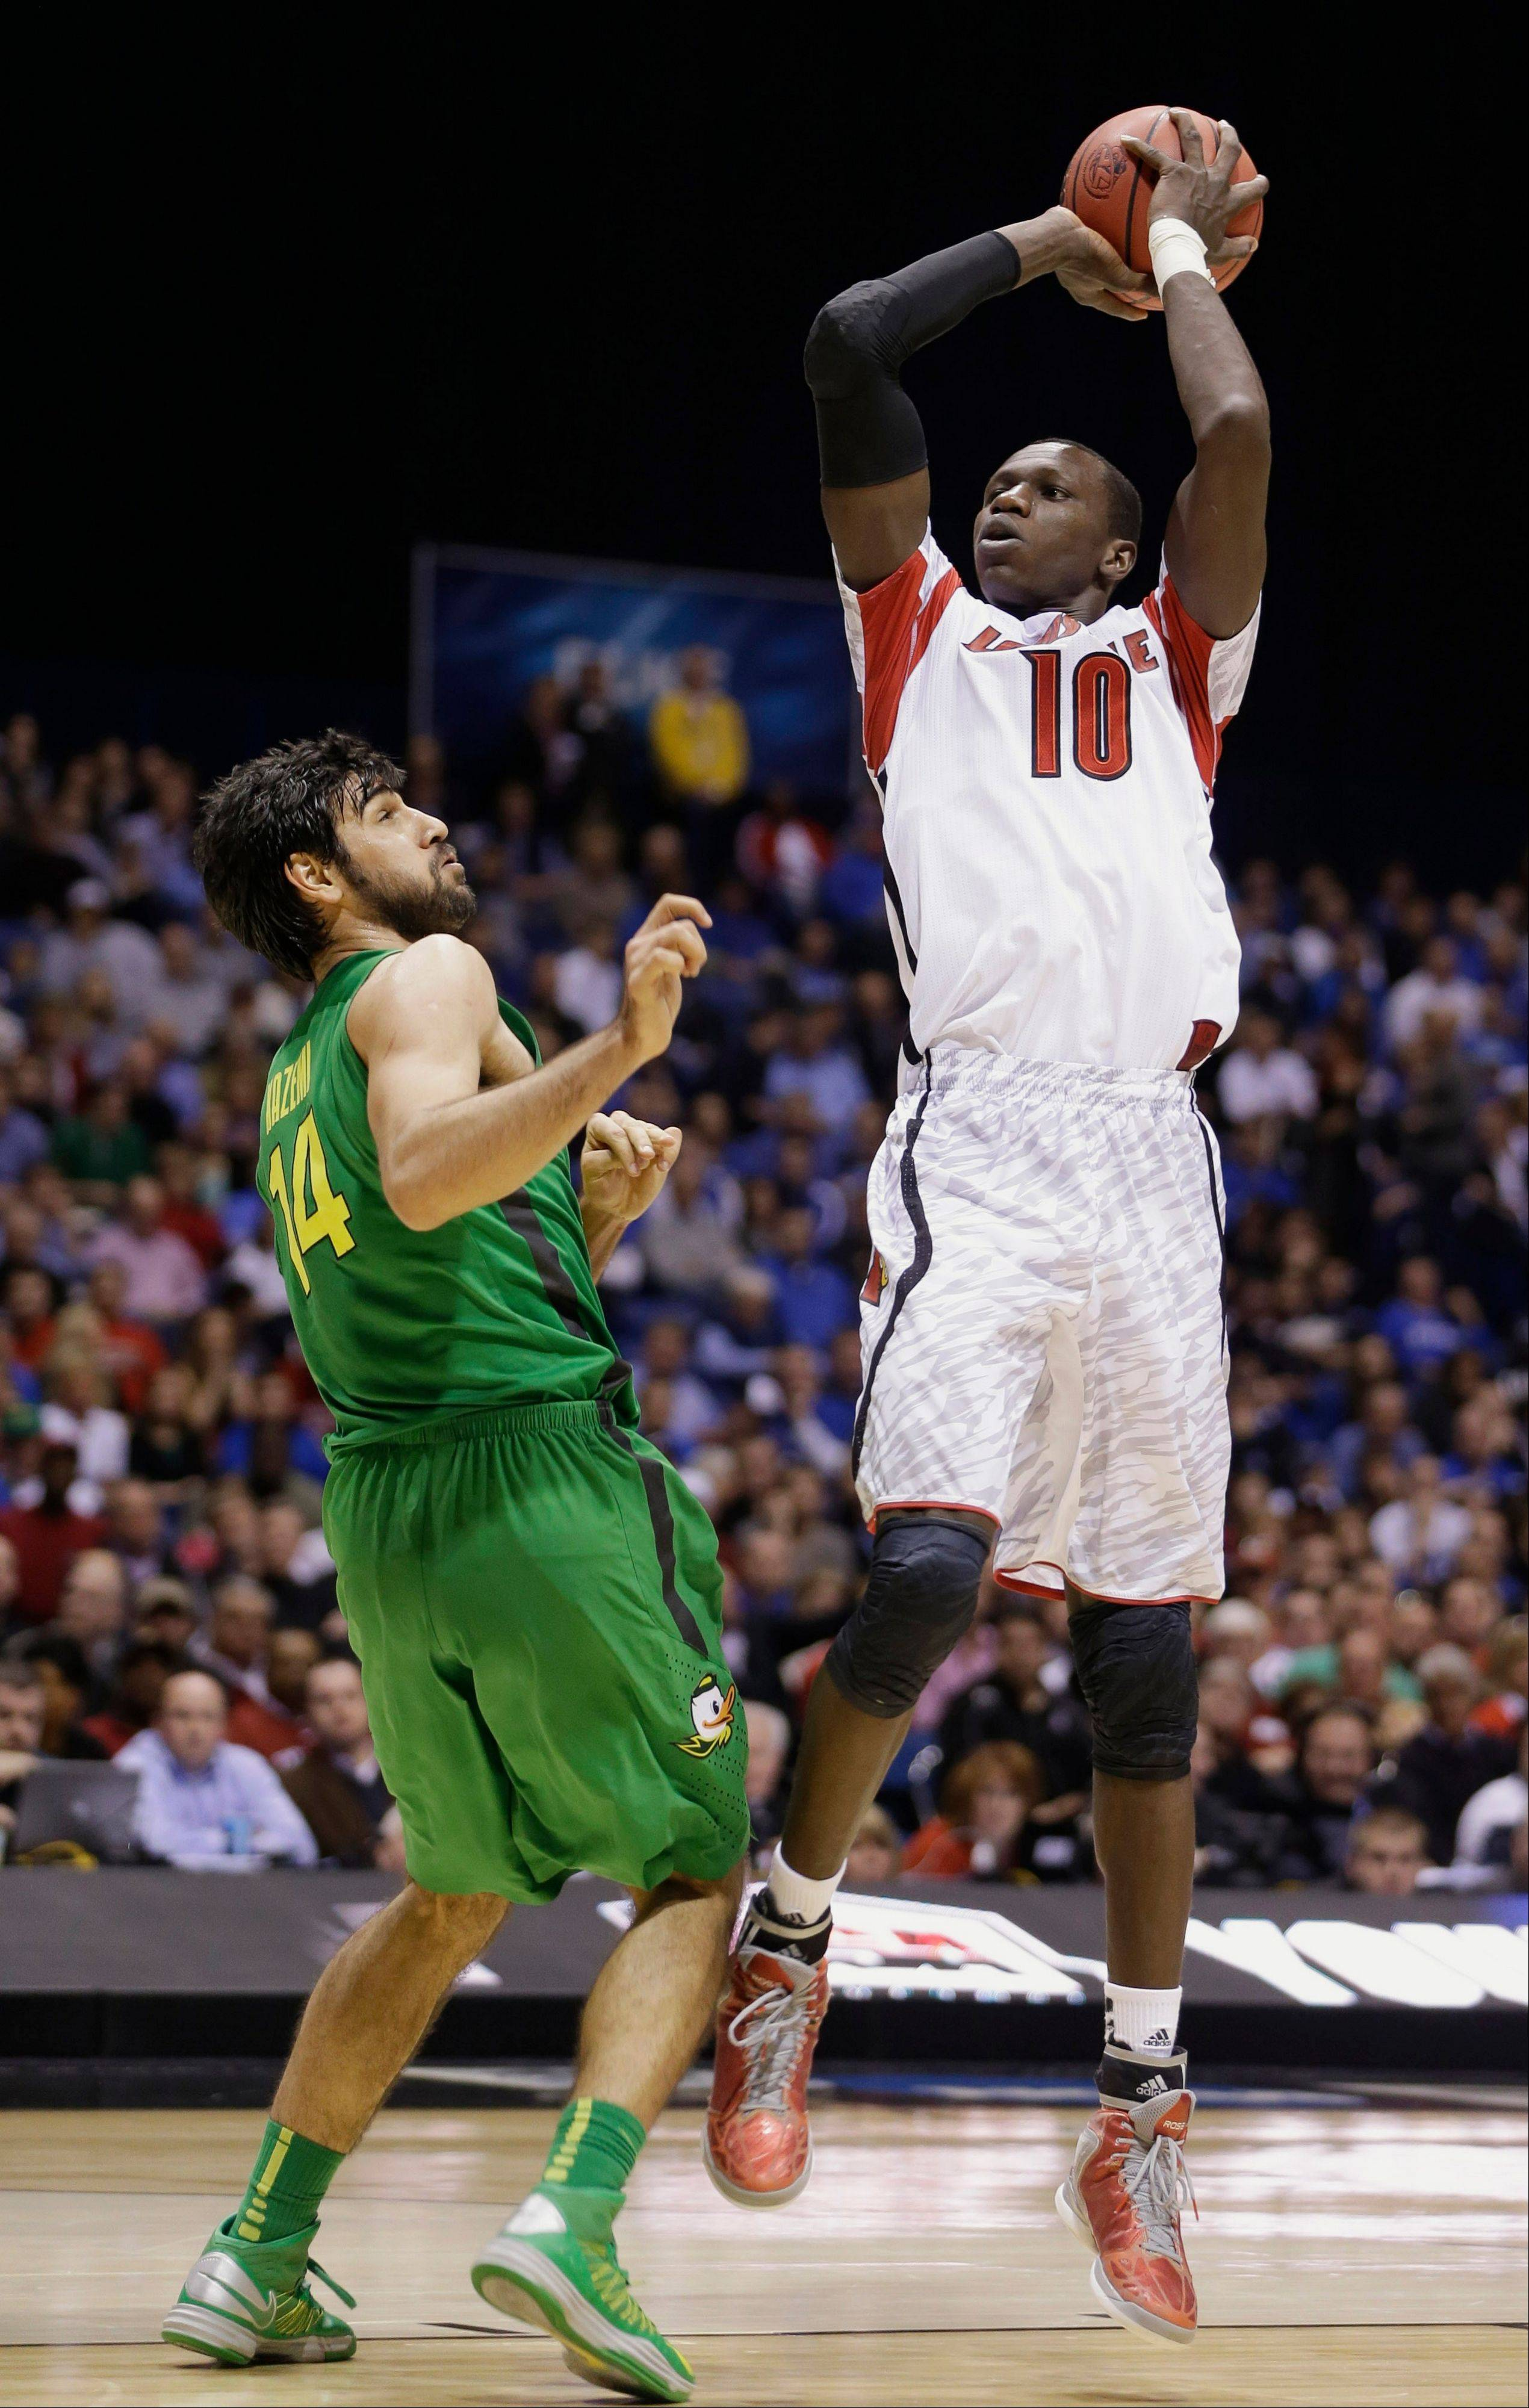 Louisville center Gorgui Dieng (10) shoots over Oregon forward Arsalan Kazemi (14) during the second half of a regional semifinal in the NCAA college basketball tournament, Friday, March 29, 2013, in Indianapolis. (AP Photo/Darron Cummings)